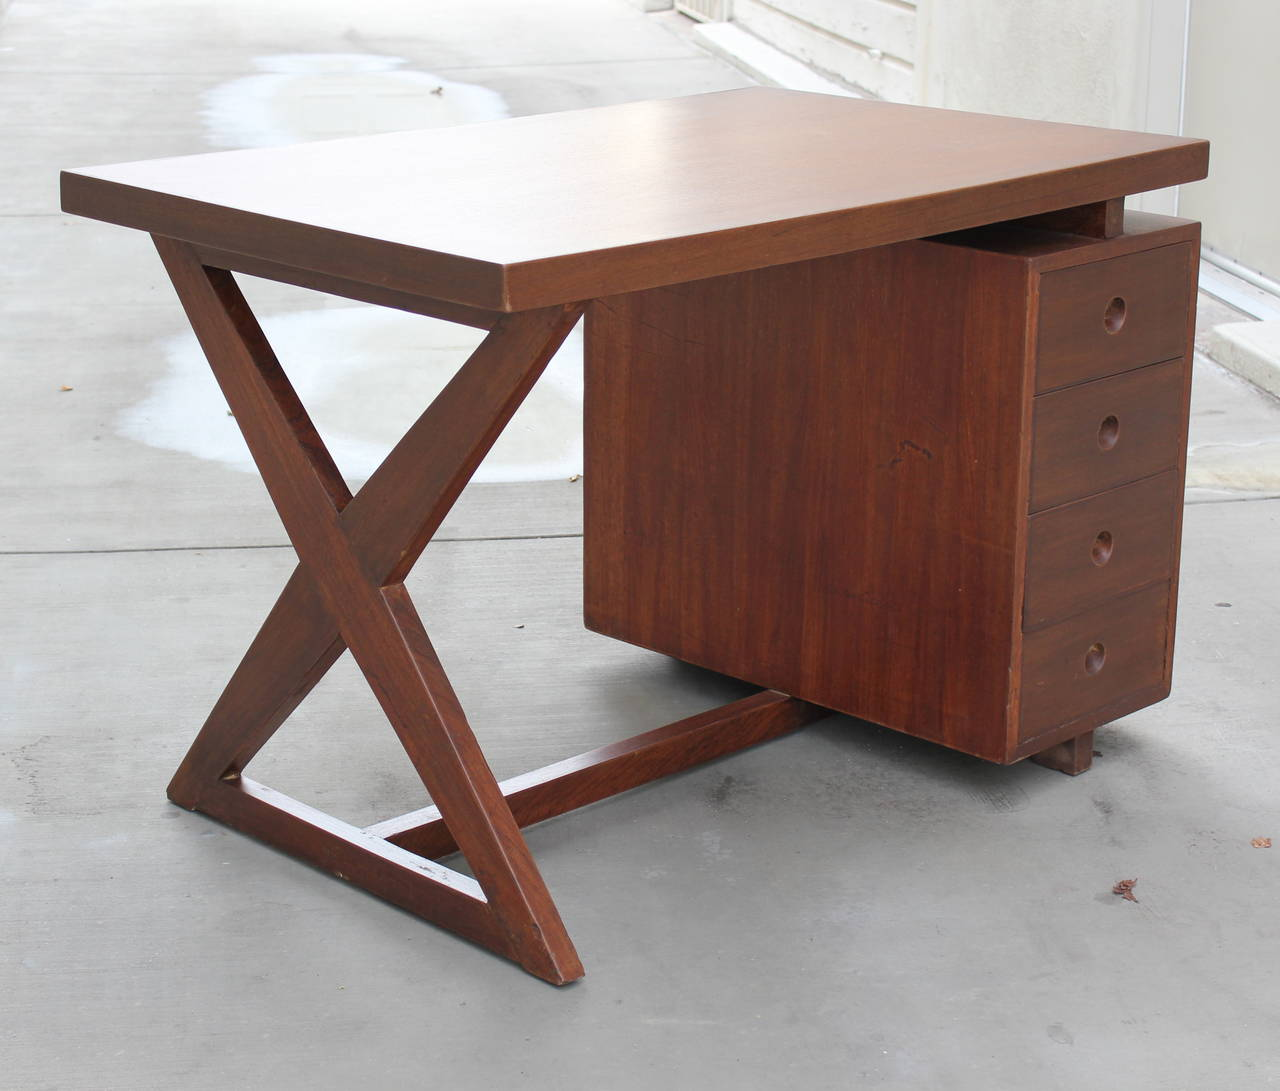 Pierre Jeanneret bureau of administration desk in solid teak. Metal inset for drawer pulls. Chandigarh, India.